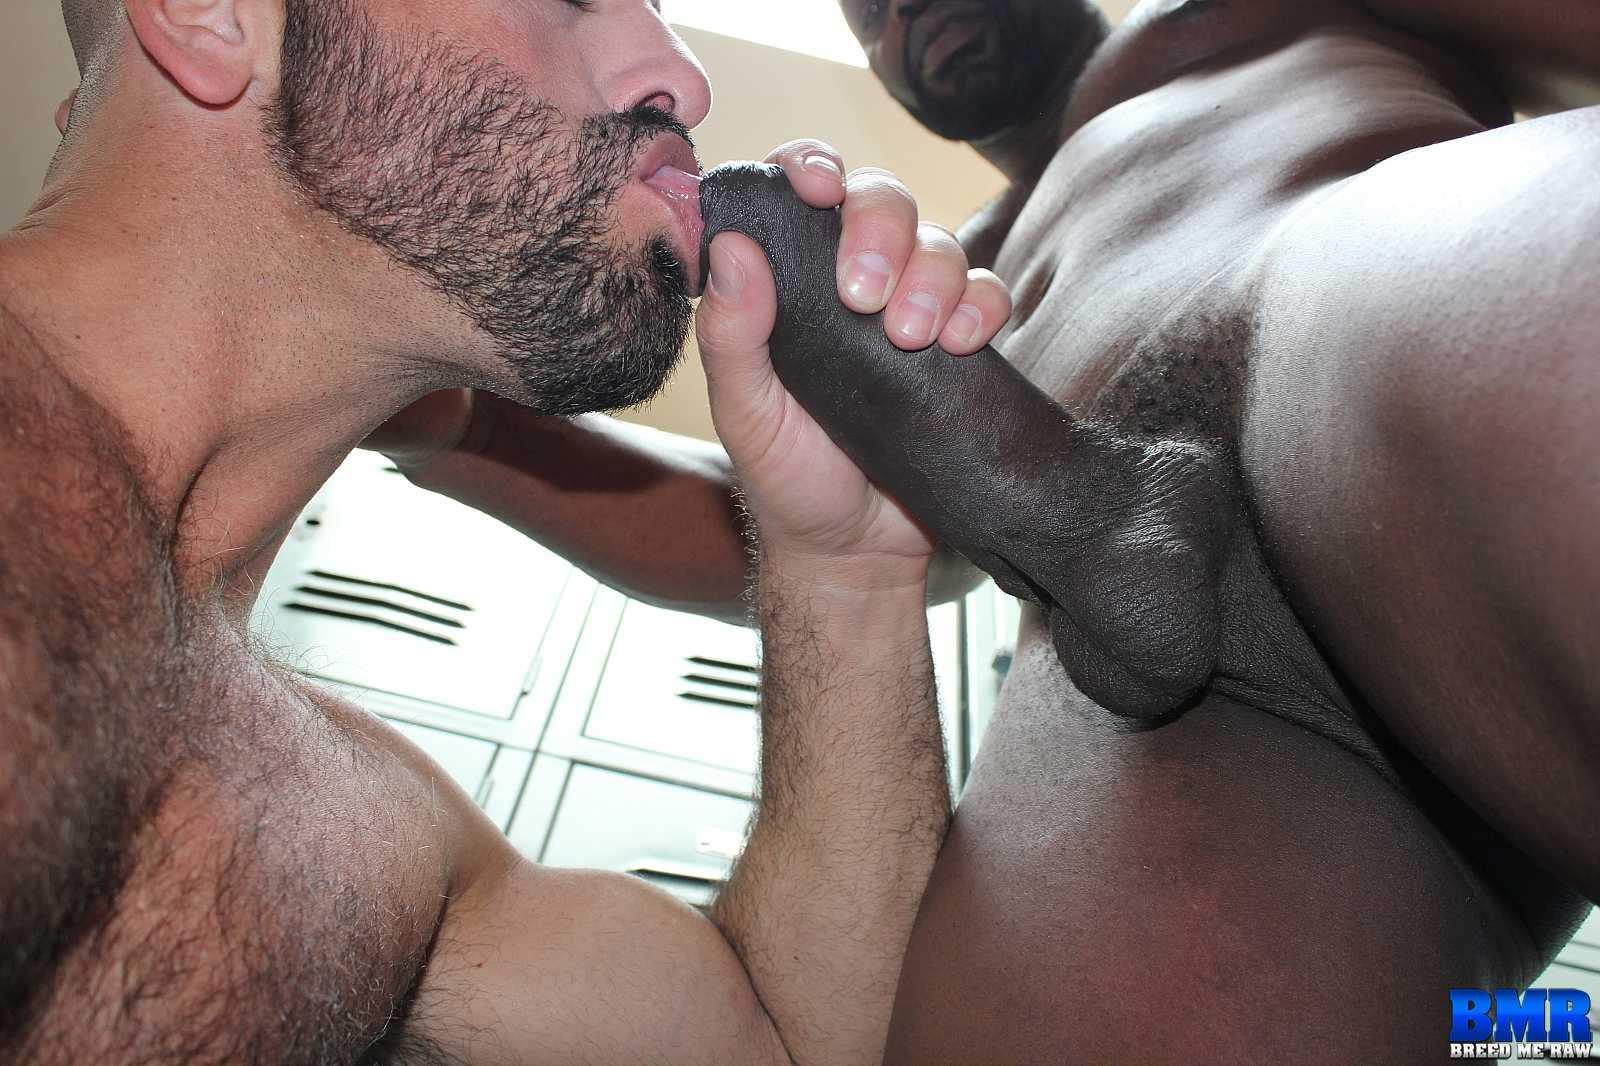 Breed Me Raw Cutler X and Adam Russo Black Guy With Big Black Cock Barebacking White Guy Amateur Gay Porn 03 Real Life Boyfriends Cutler X Barebacking Adam Russo